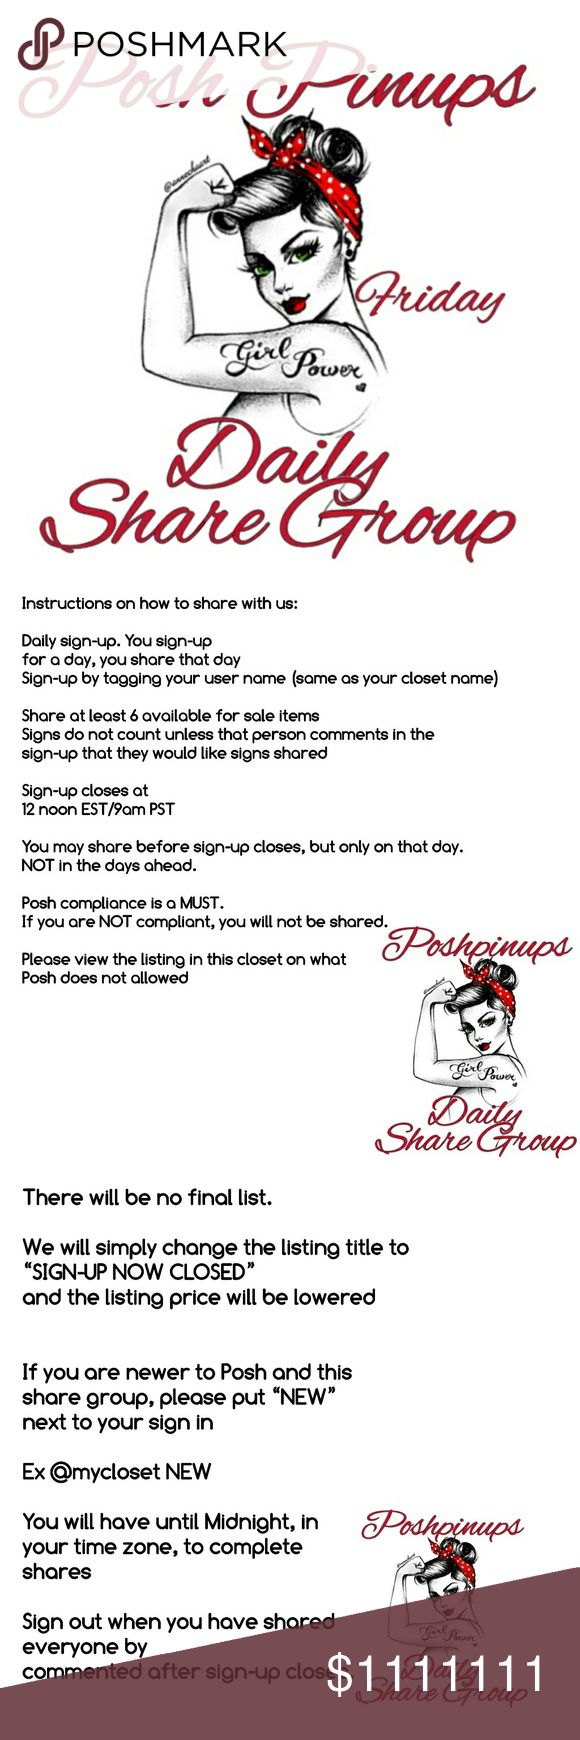 Friday May 5 Sign-up All rules are listed in slides above. Please ask, in the chat listing, if you have any questions, concerns, ideas or just want to chat!  Remember, you must be Posh Compliant. If you aren't, you run the risk of not being shared Tag Allison, @alluck1210, Trina, @myboutique71 or Angelia @restlessangel so we see your comment right away. We aren't always logged in to this closet. Thank you! Other